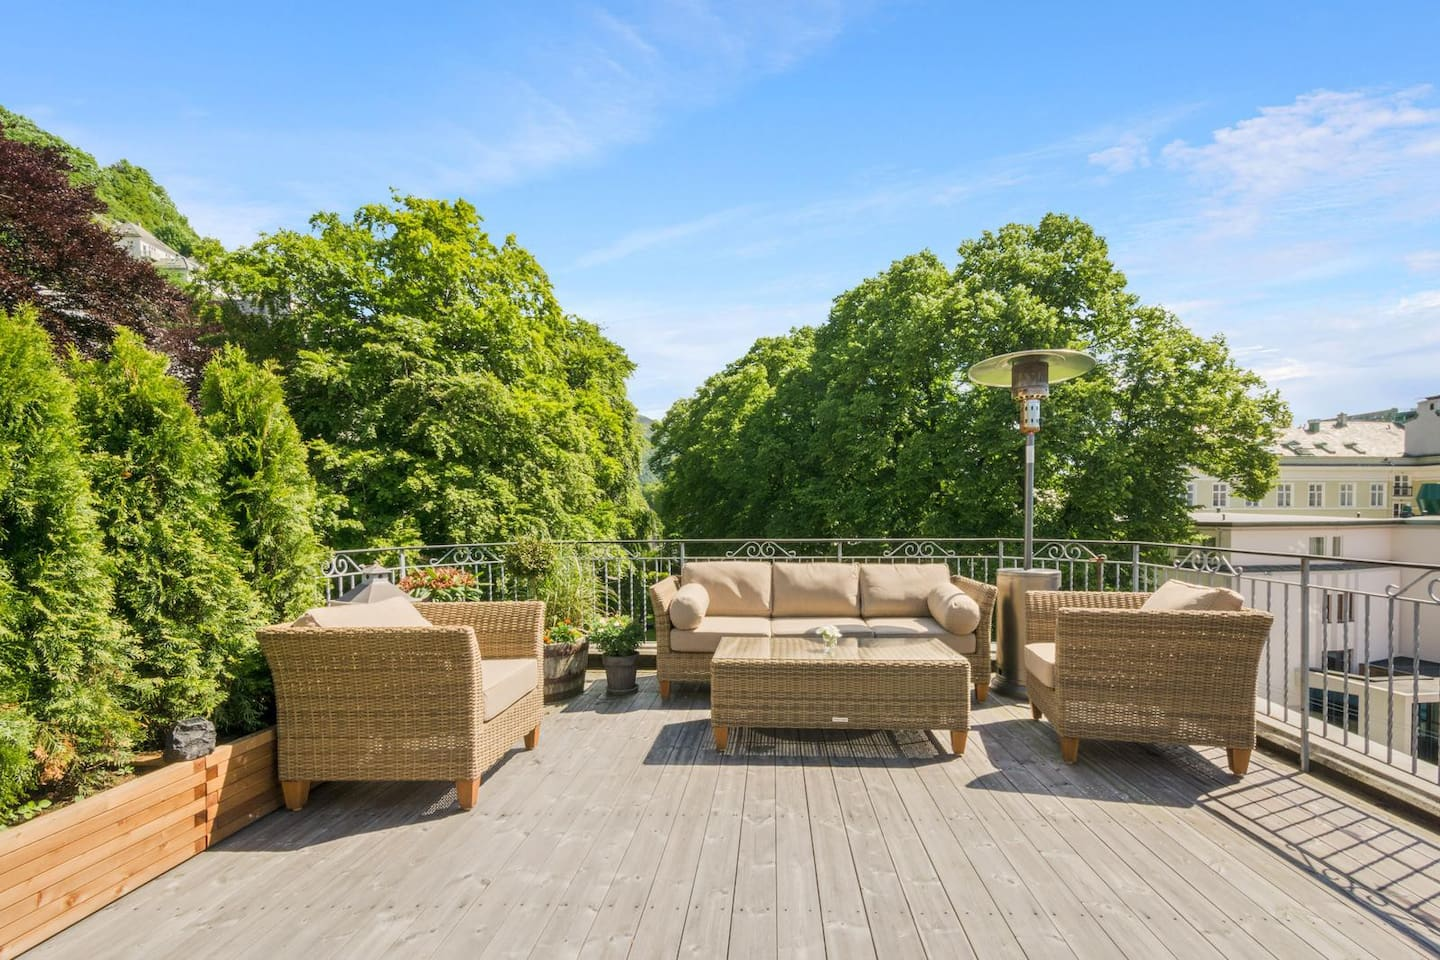 Welcome to our rooftop garden. Relax outside after shopping or sightseeing.